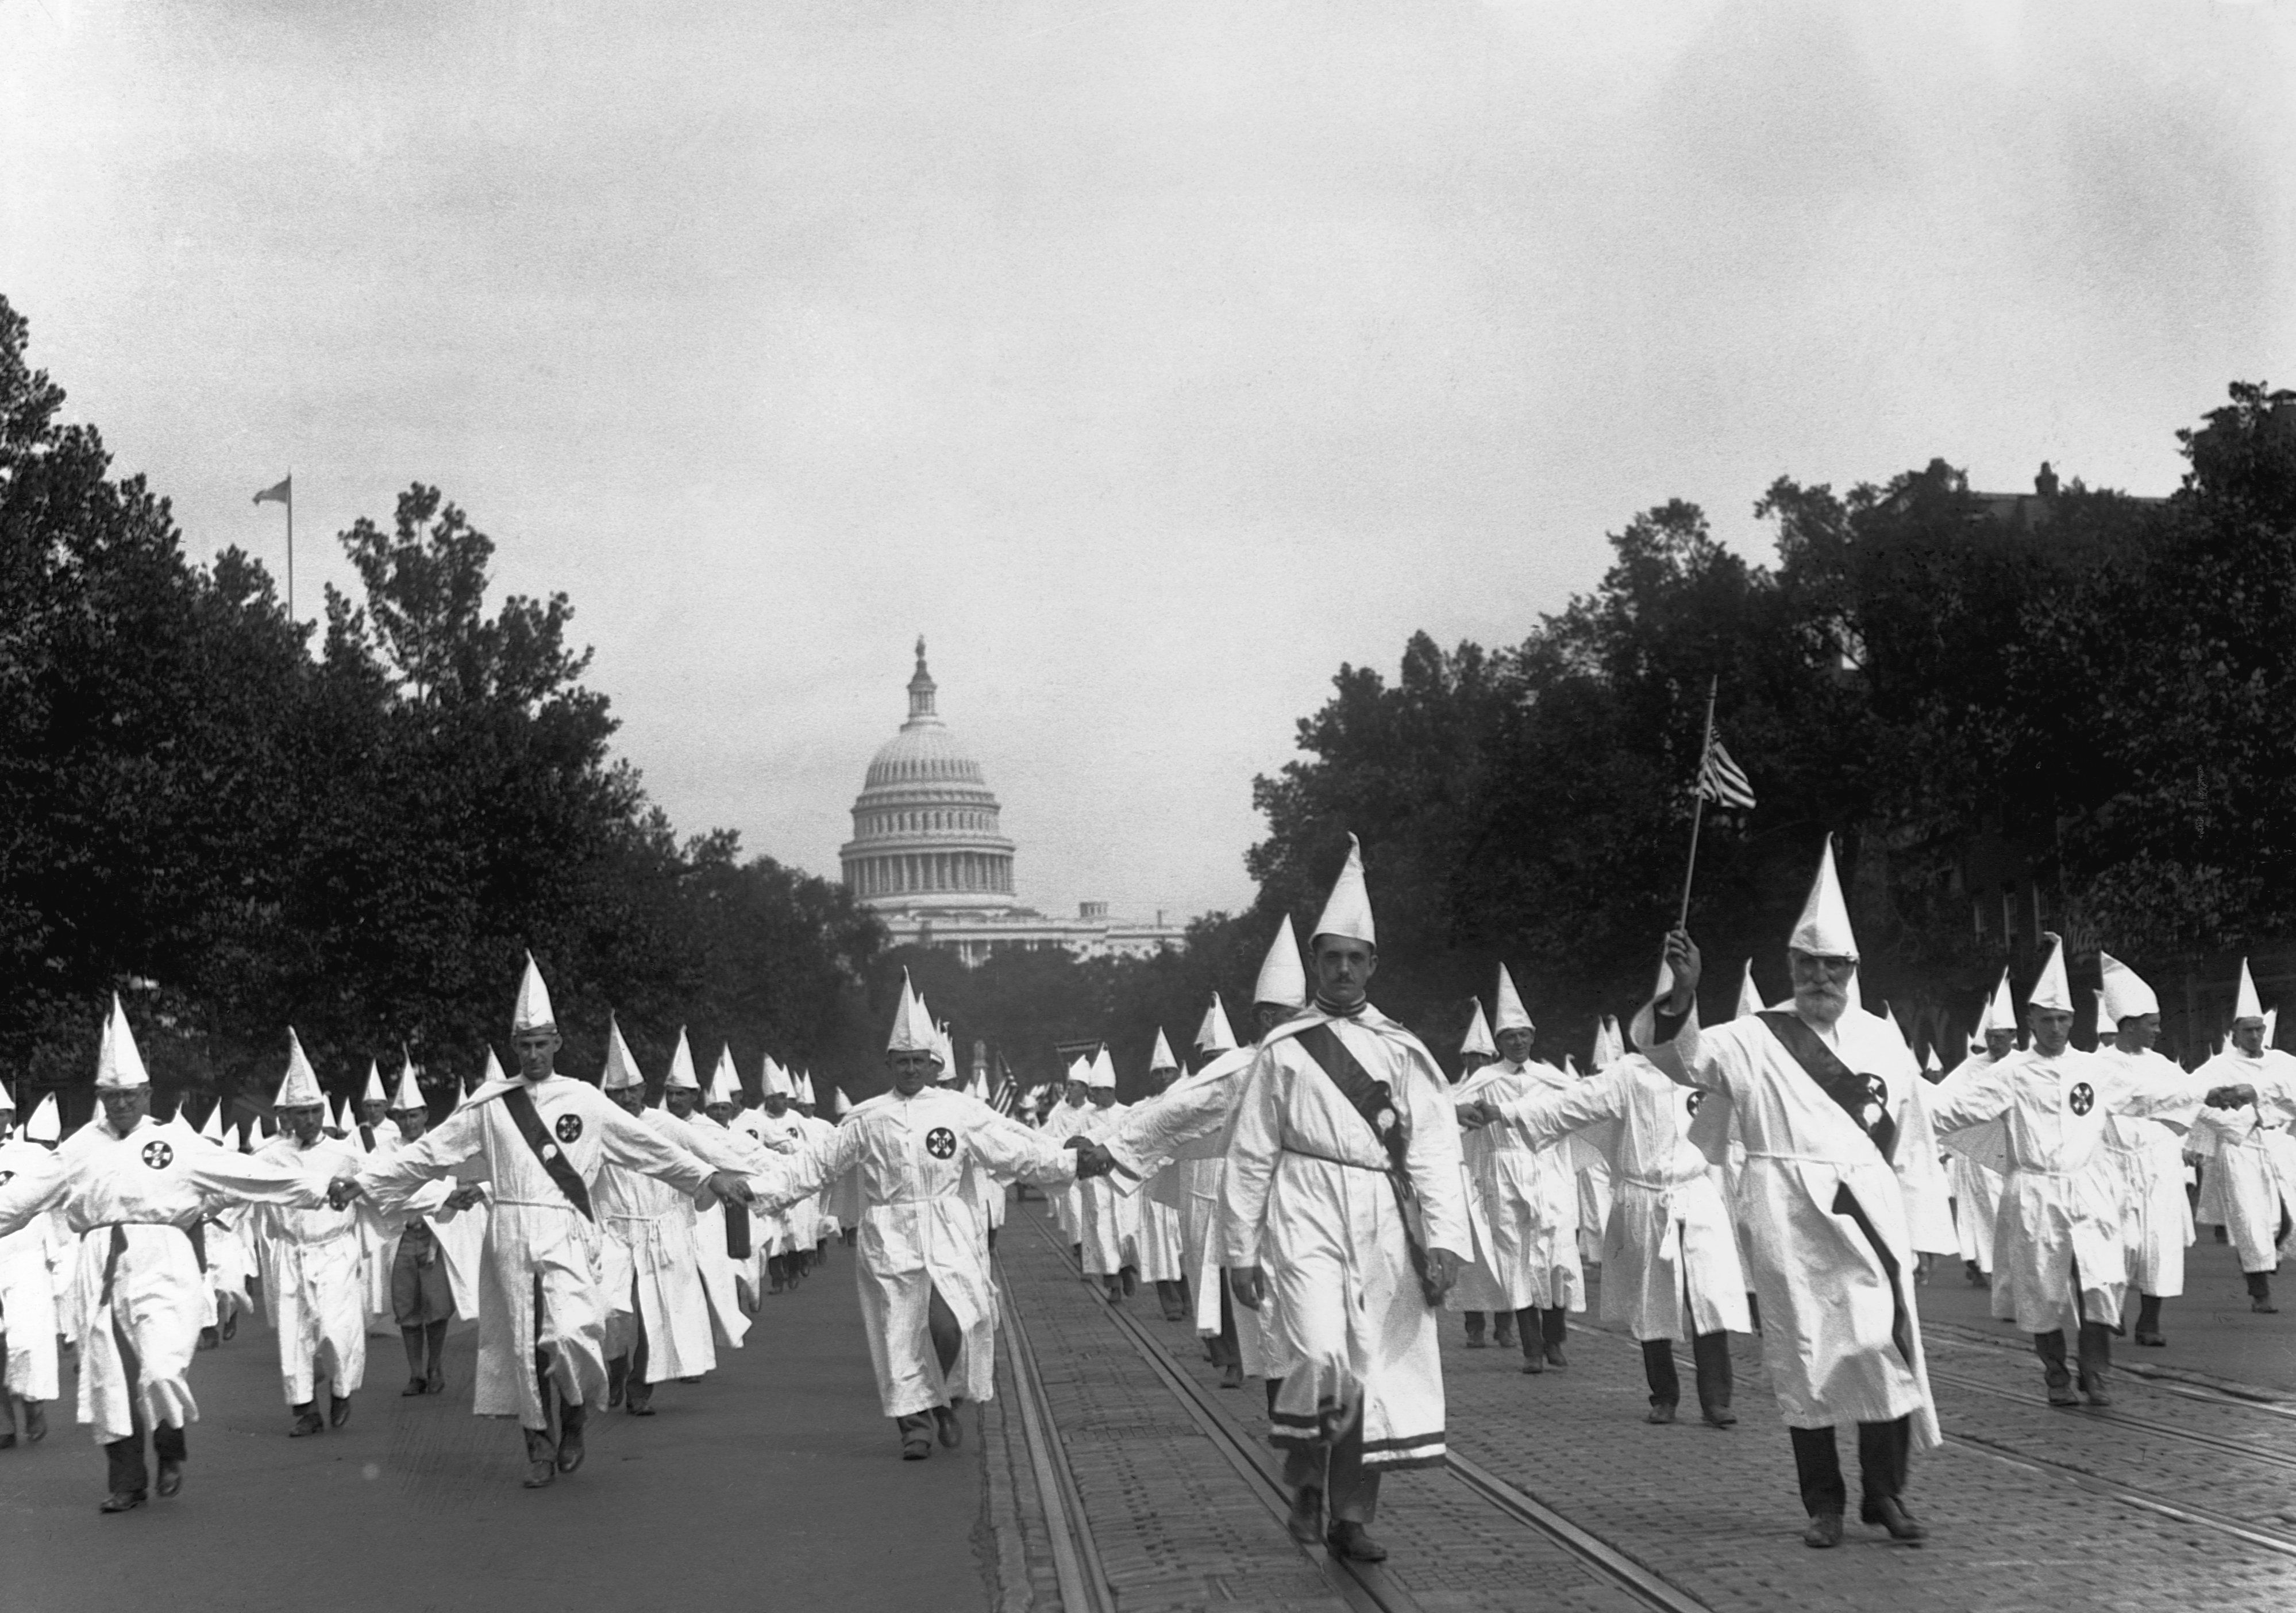 Ku Klux Klan members hold a march in Washington, DC, on August 9, 1925.